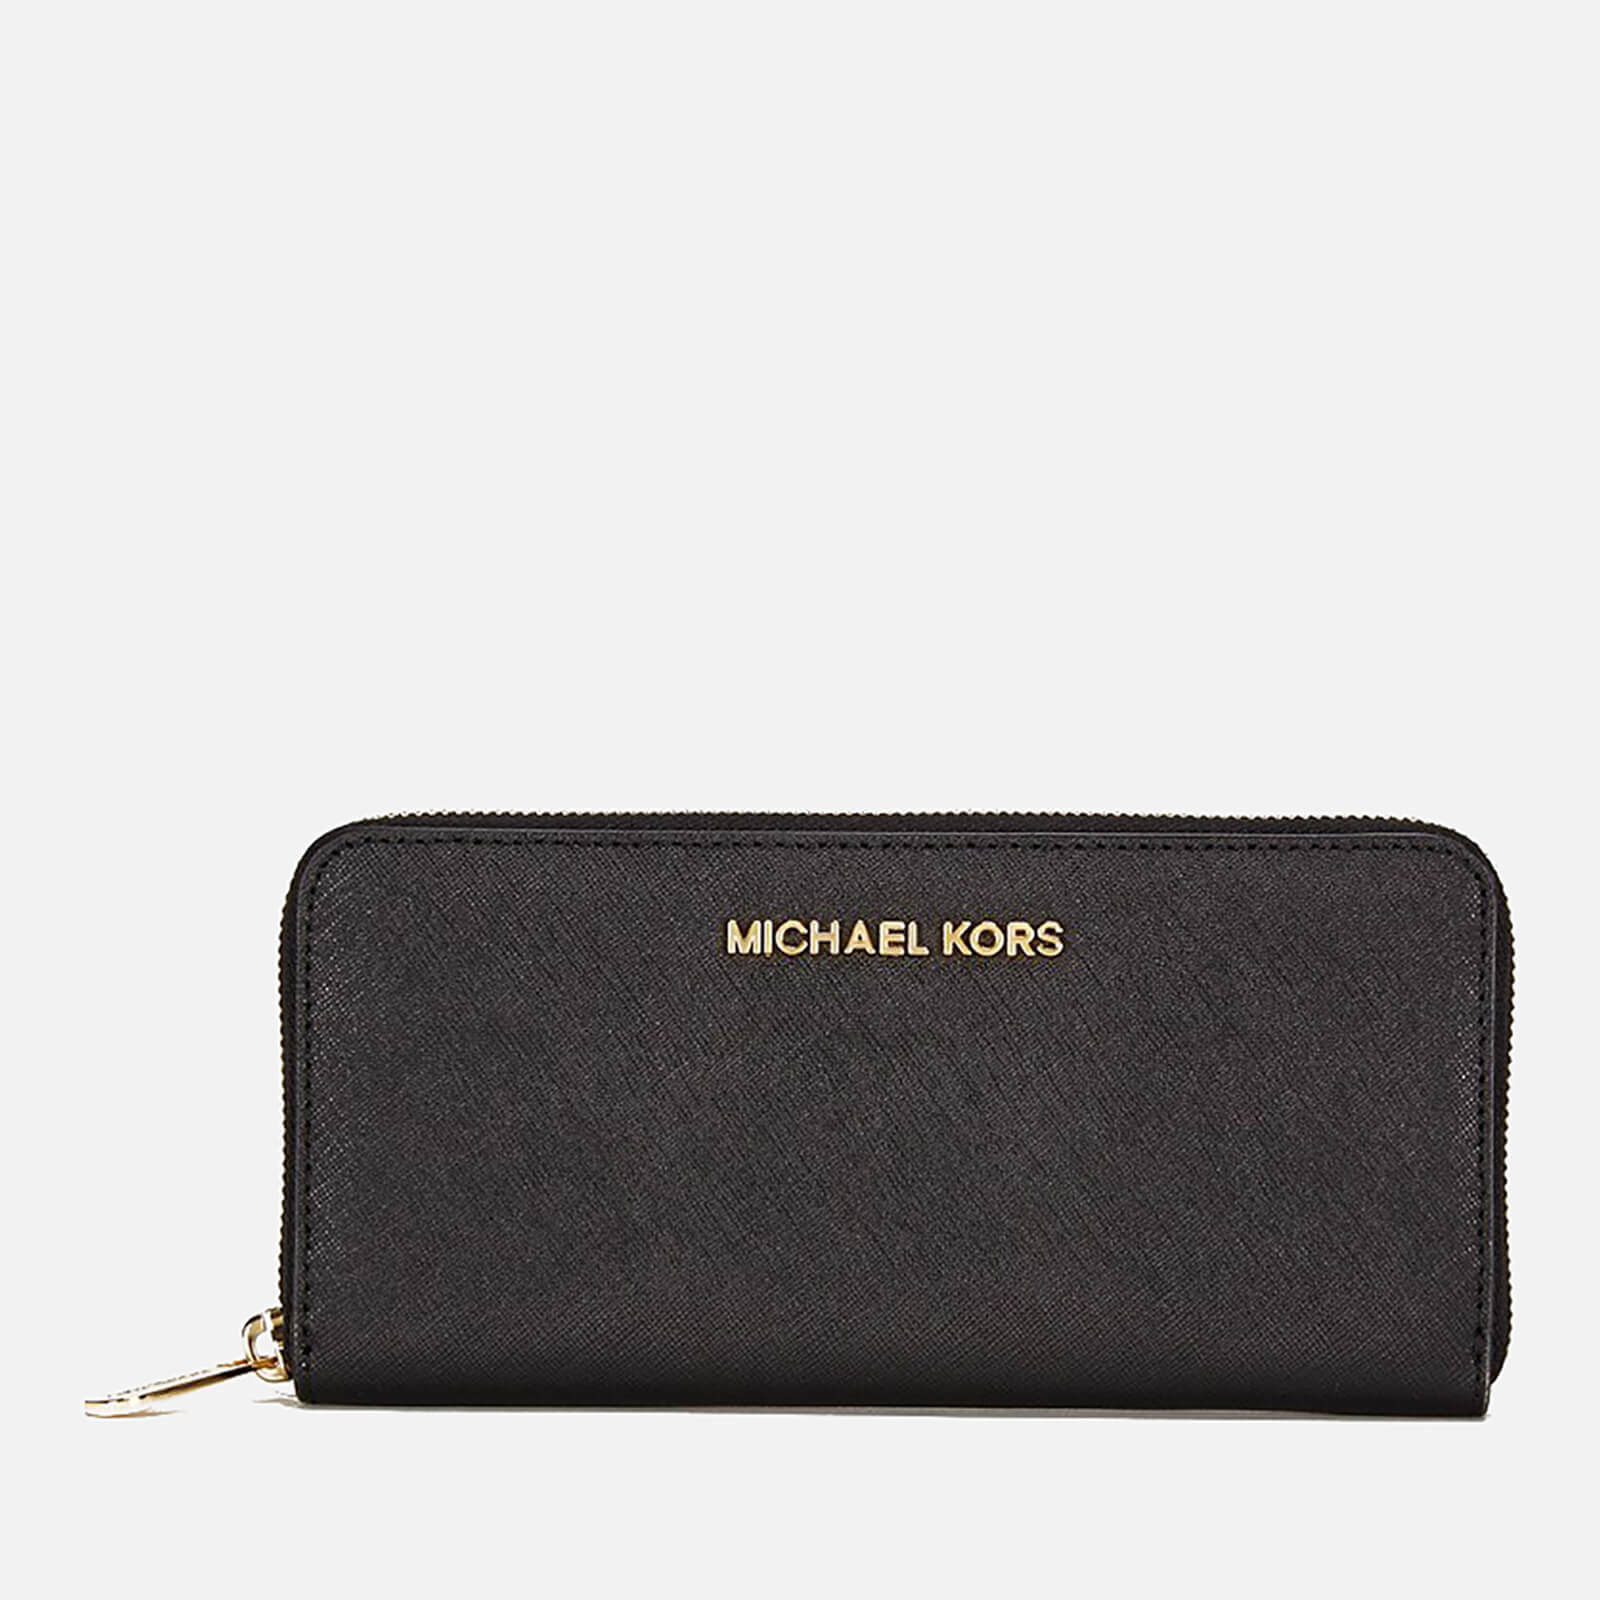 8f1314ab2f29 ... MICHAEL MICHAEL KORS Womens Jet Set Travel Purse - Black ...